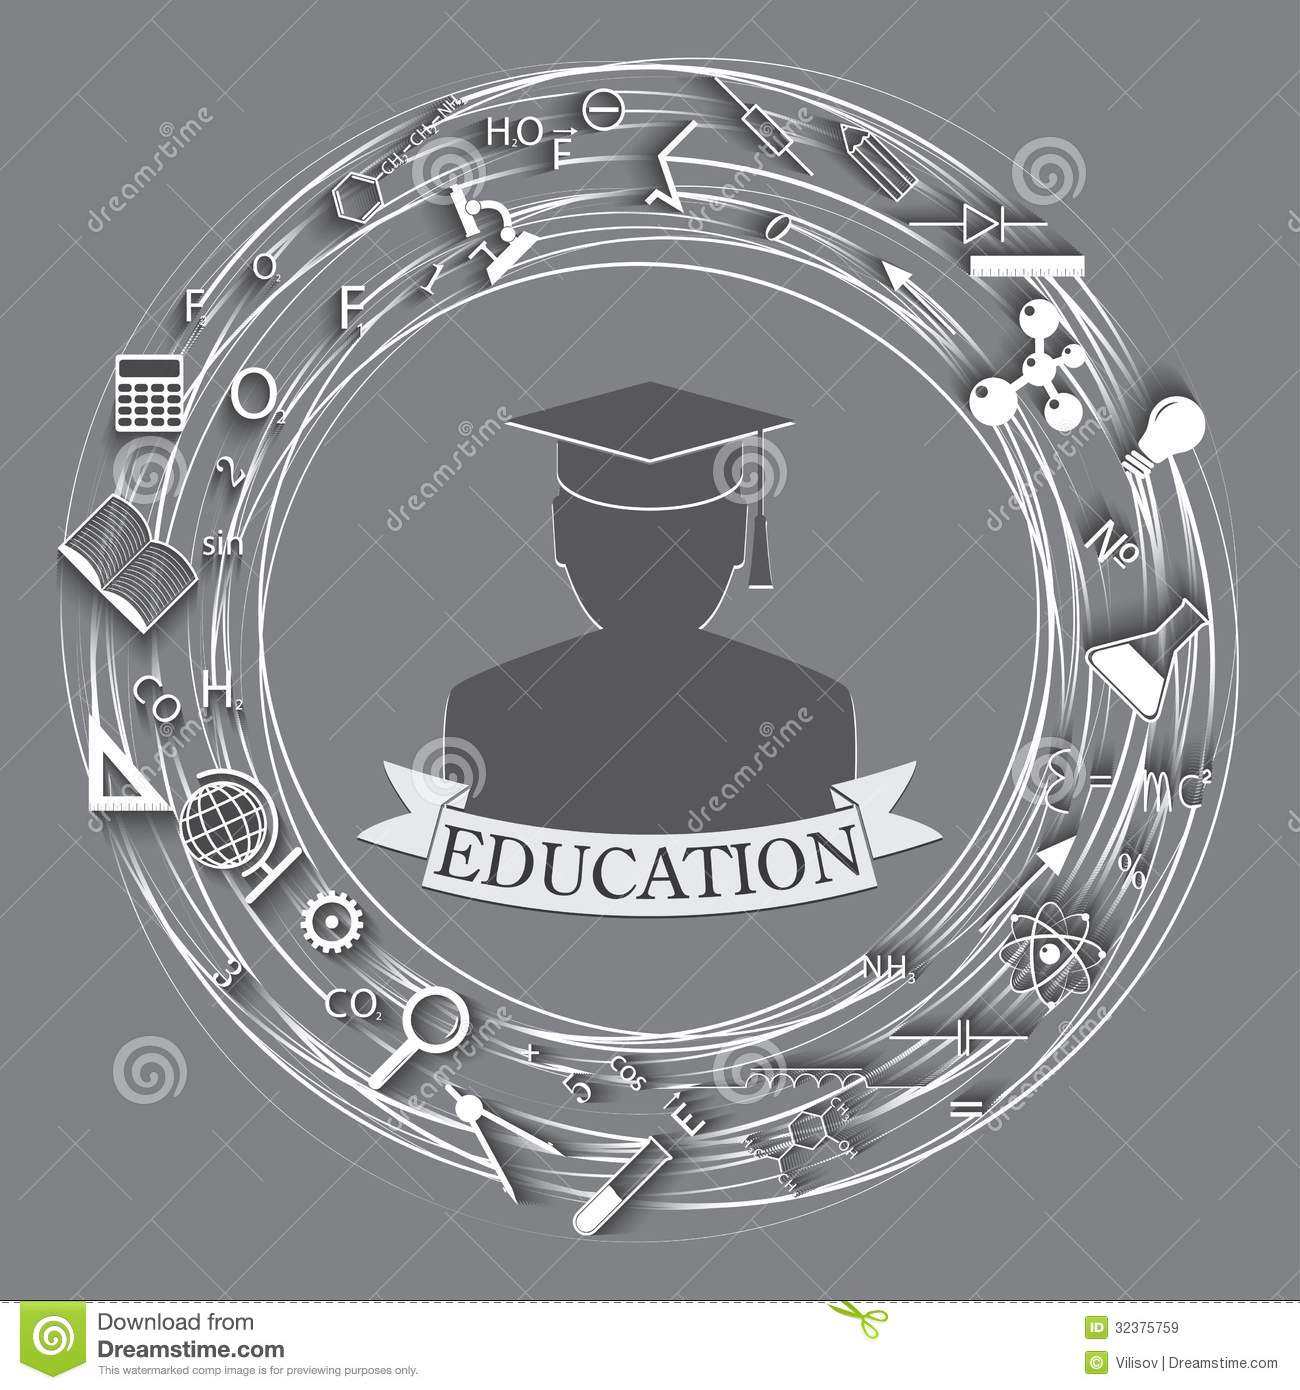 Education Abstract Background Royalty Free Stock Images ...